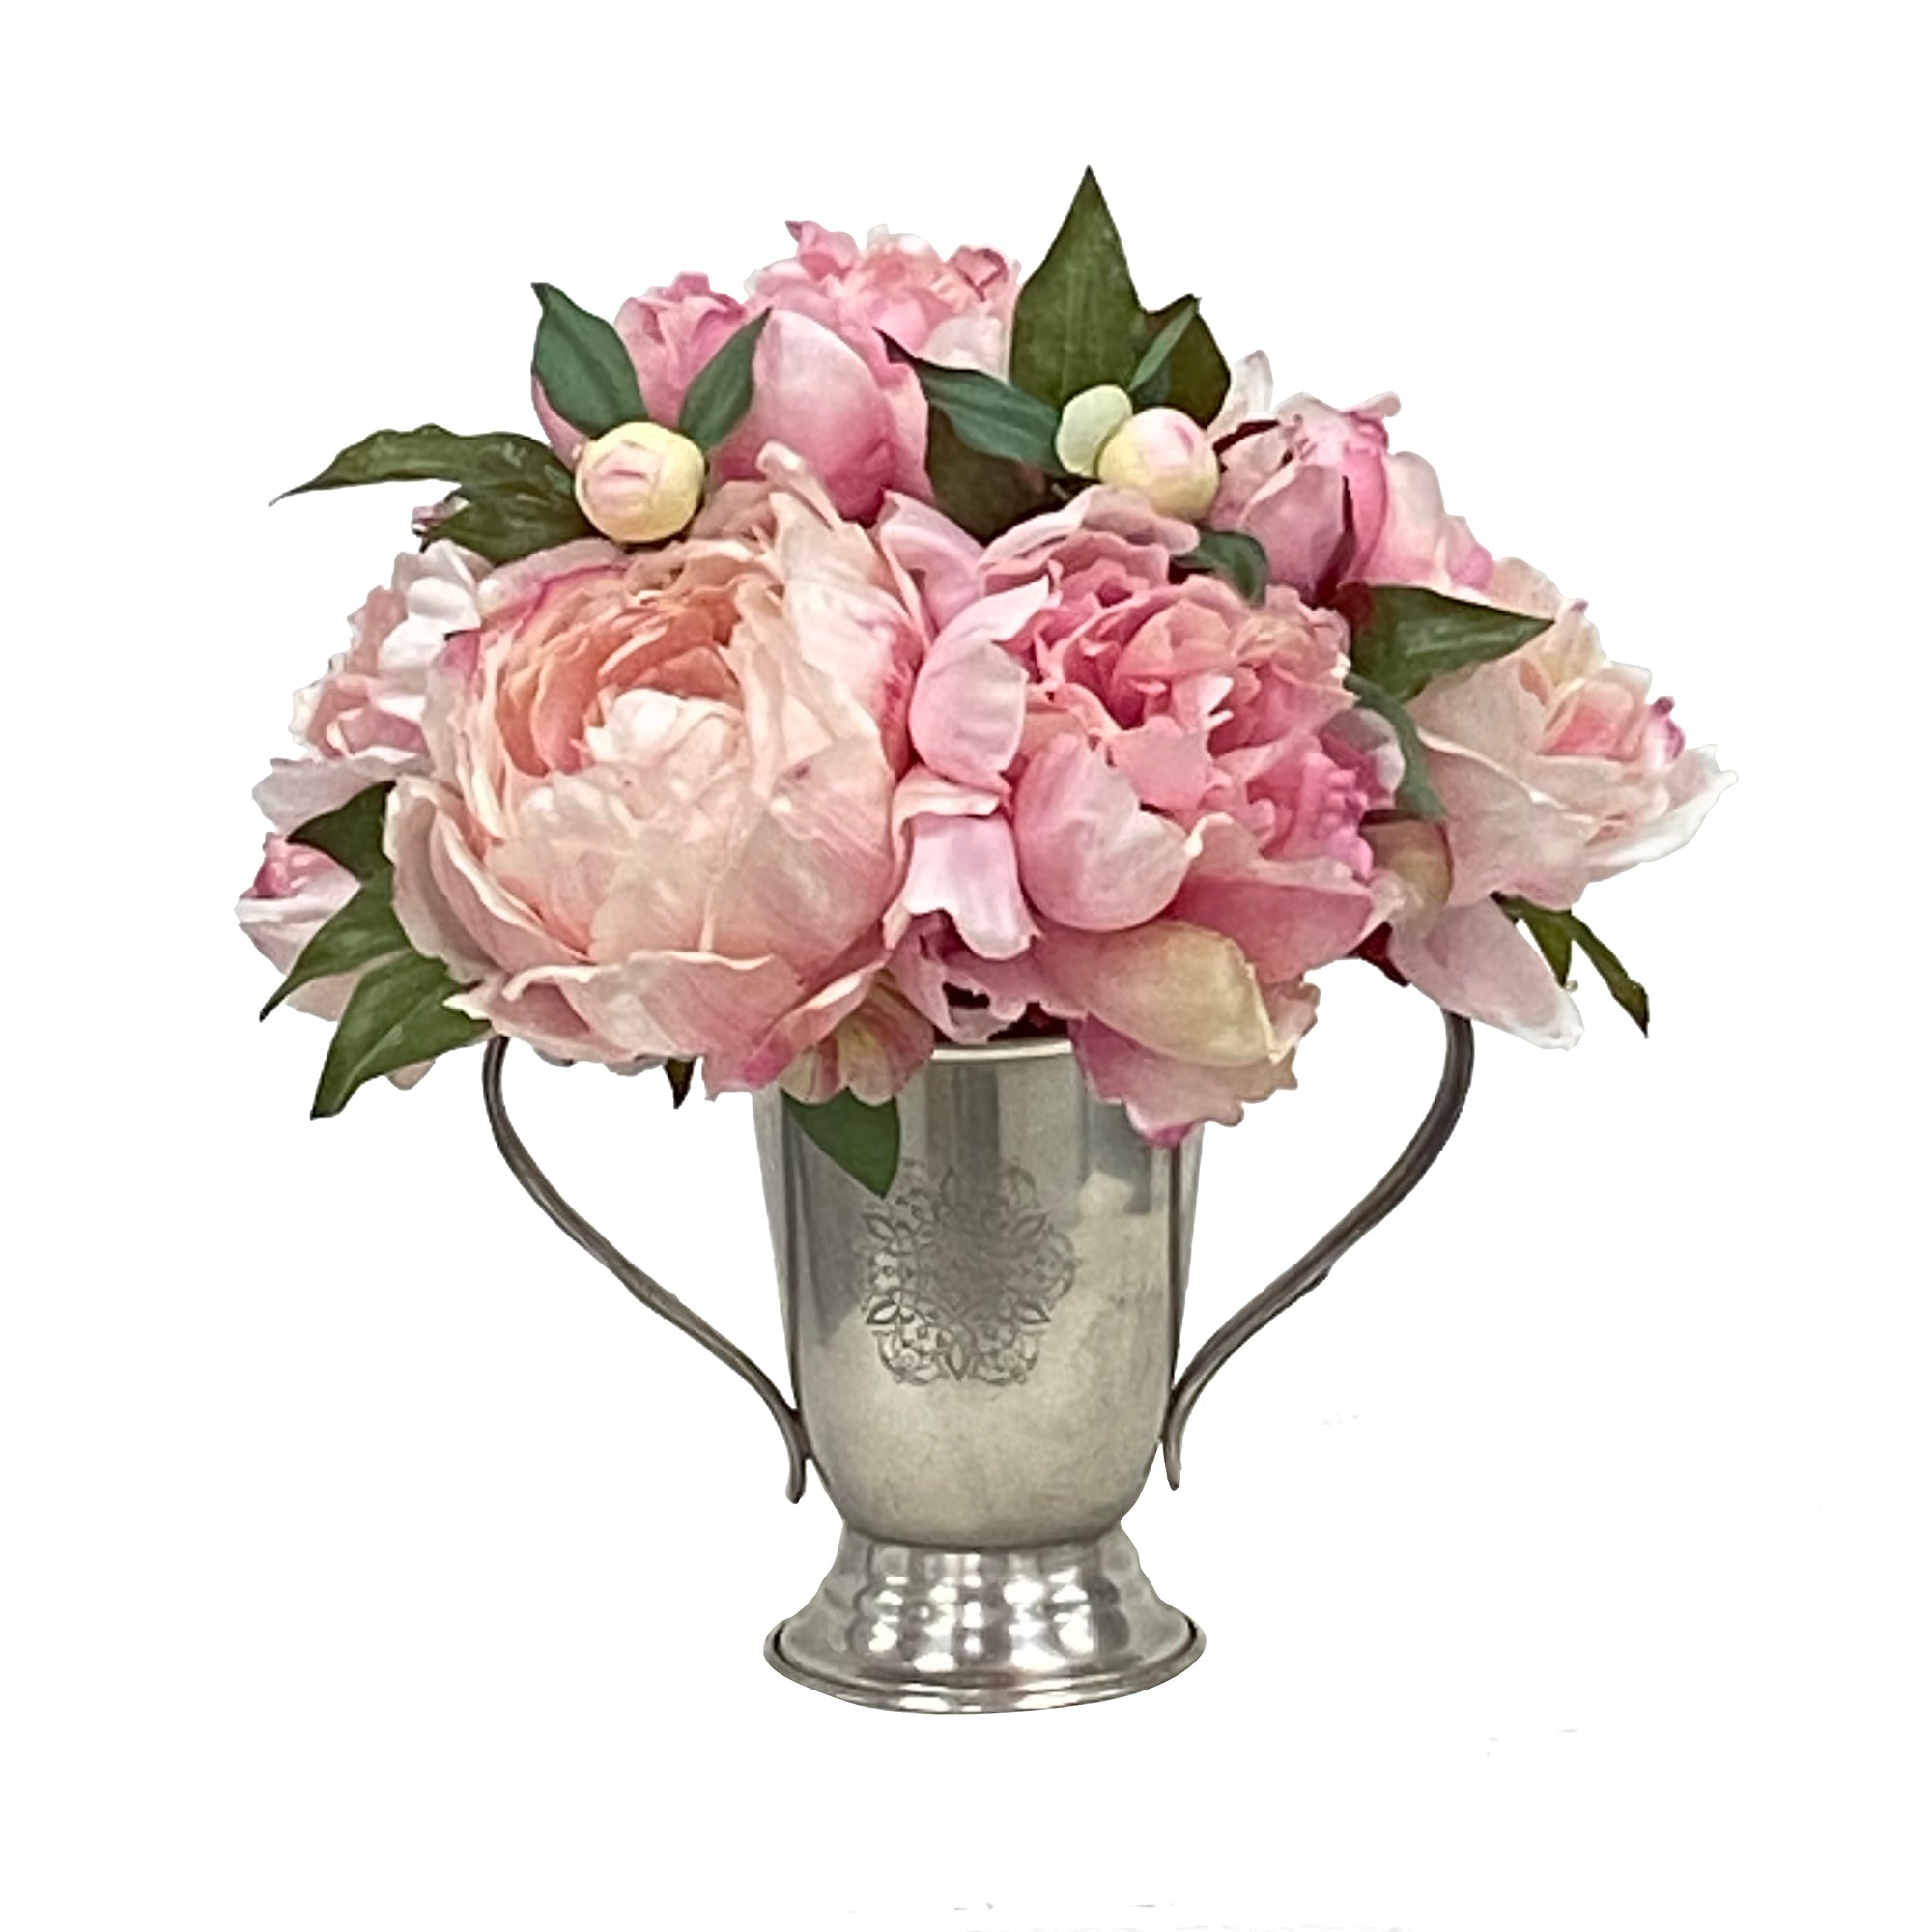 Pink peonies in silver container